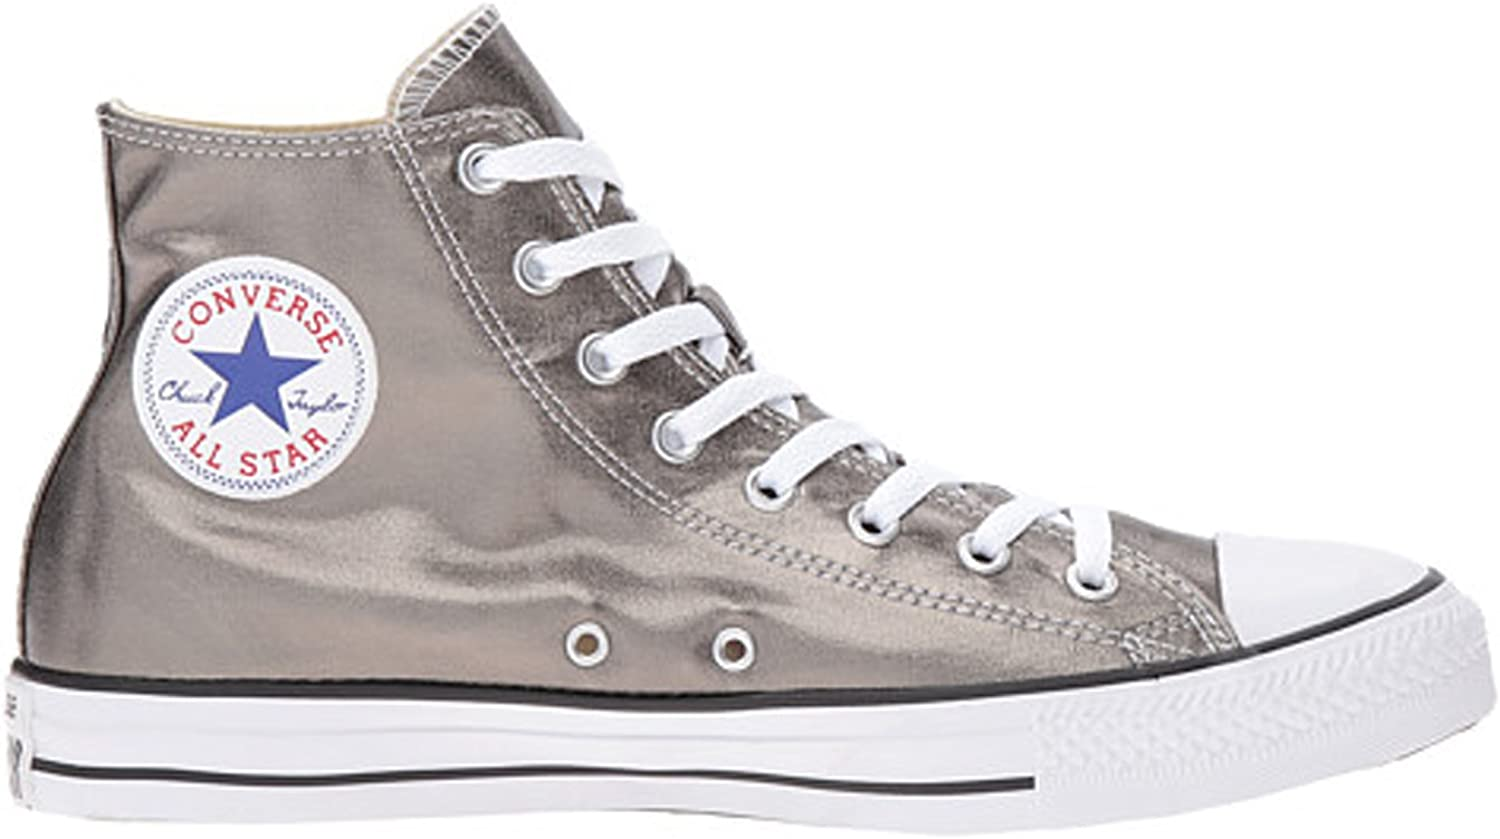 Converse Chuck Taylor All Star Metallic Canvas Hi Metallic Herbal White Black Athletic shoes